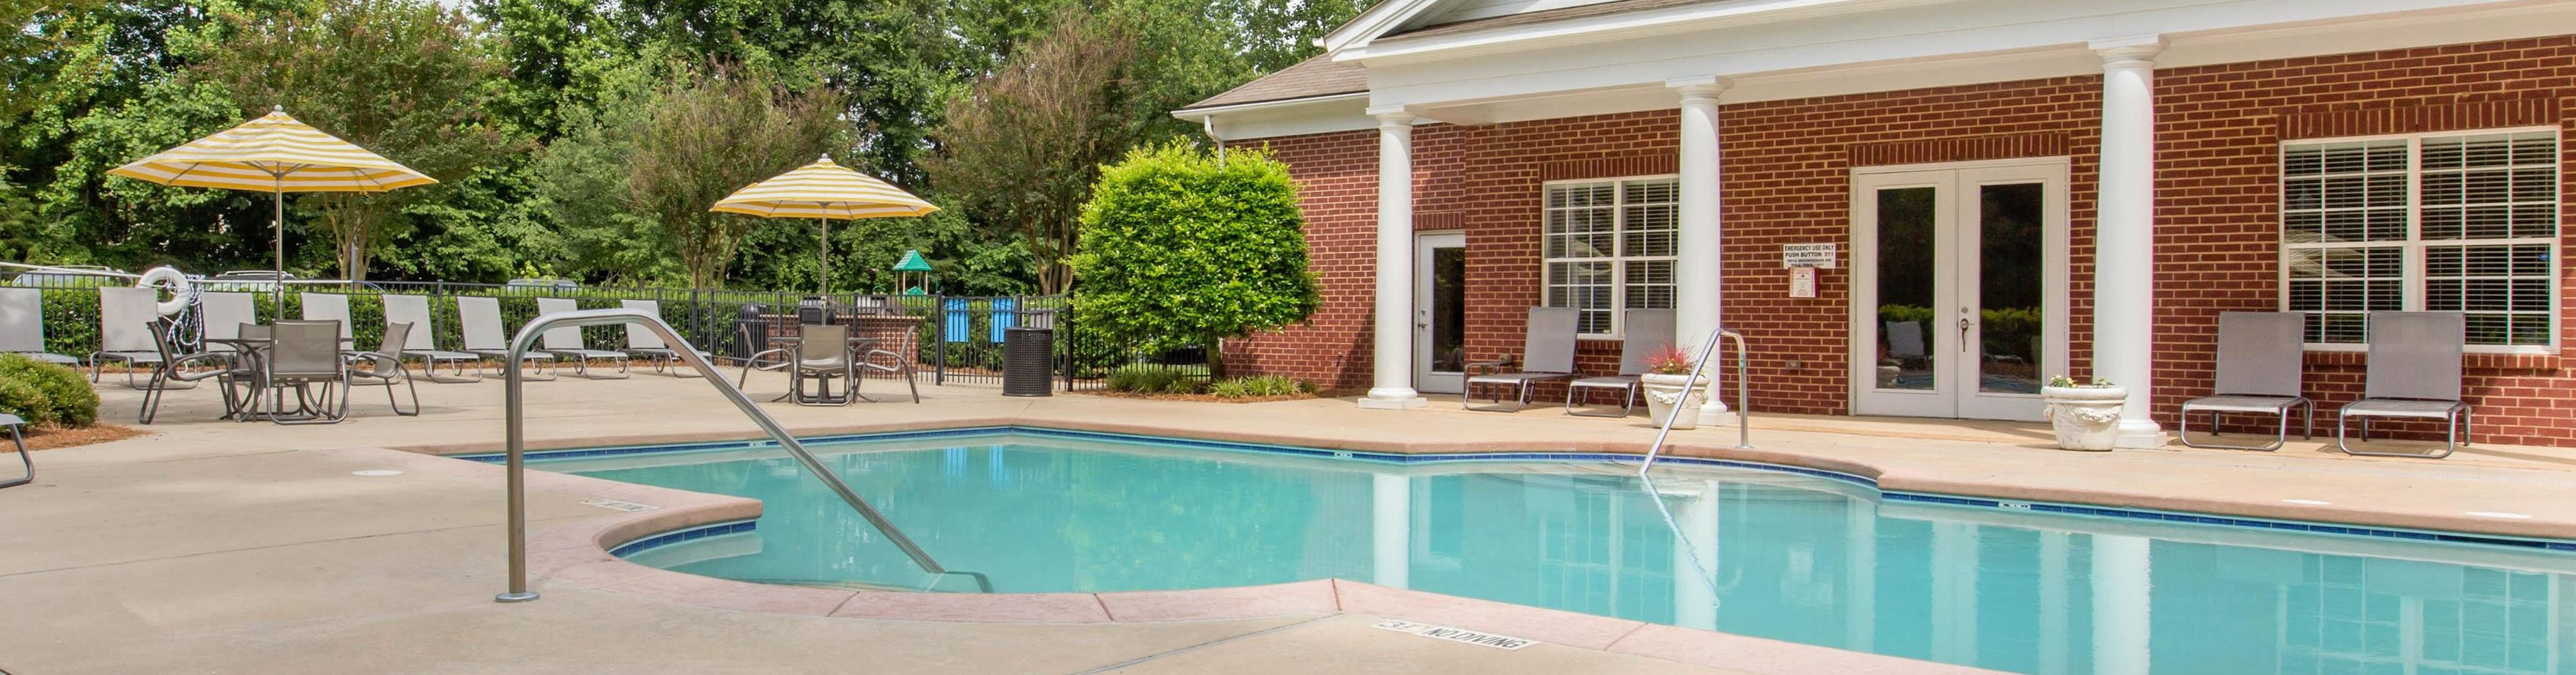 Swimming Pool | Reserve at River Walk Apartment Homes Columbia, SC